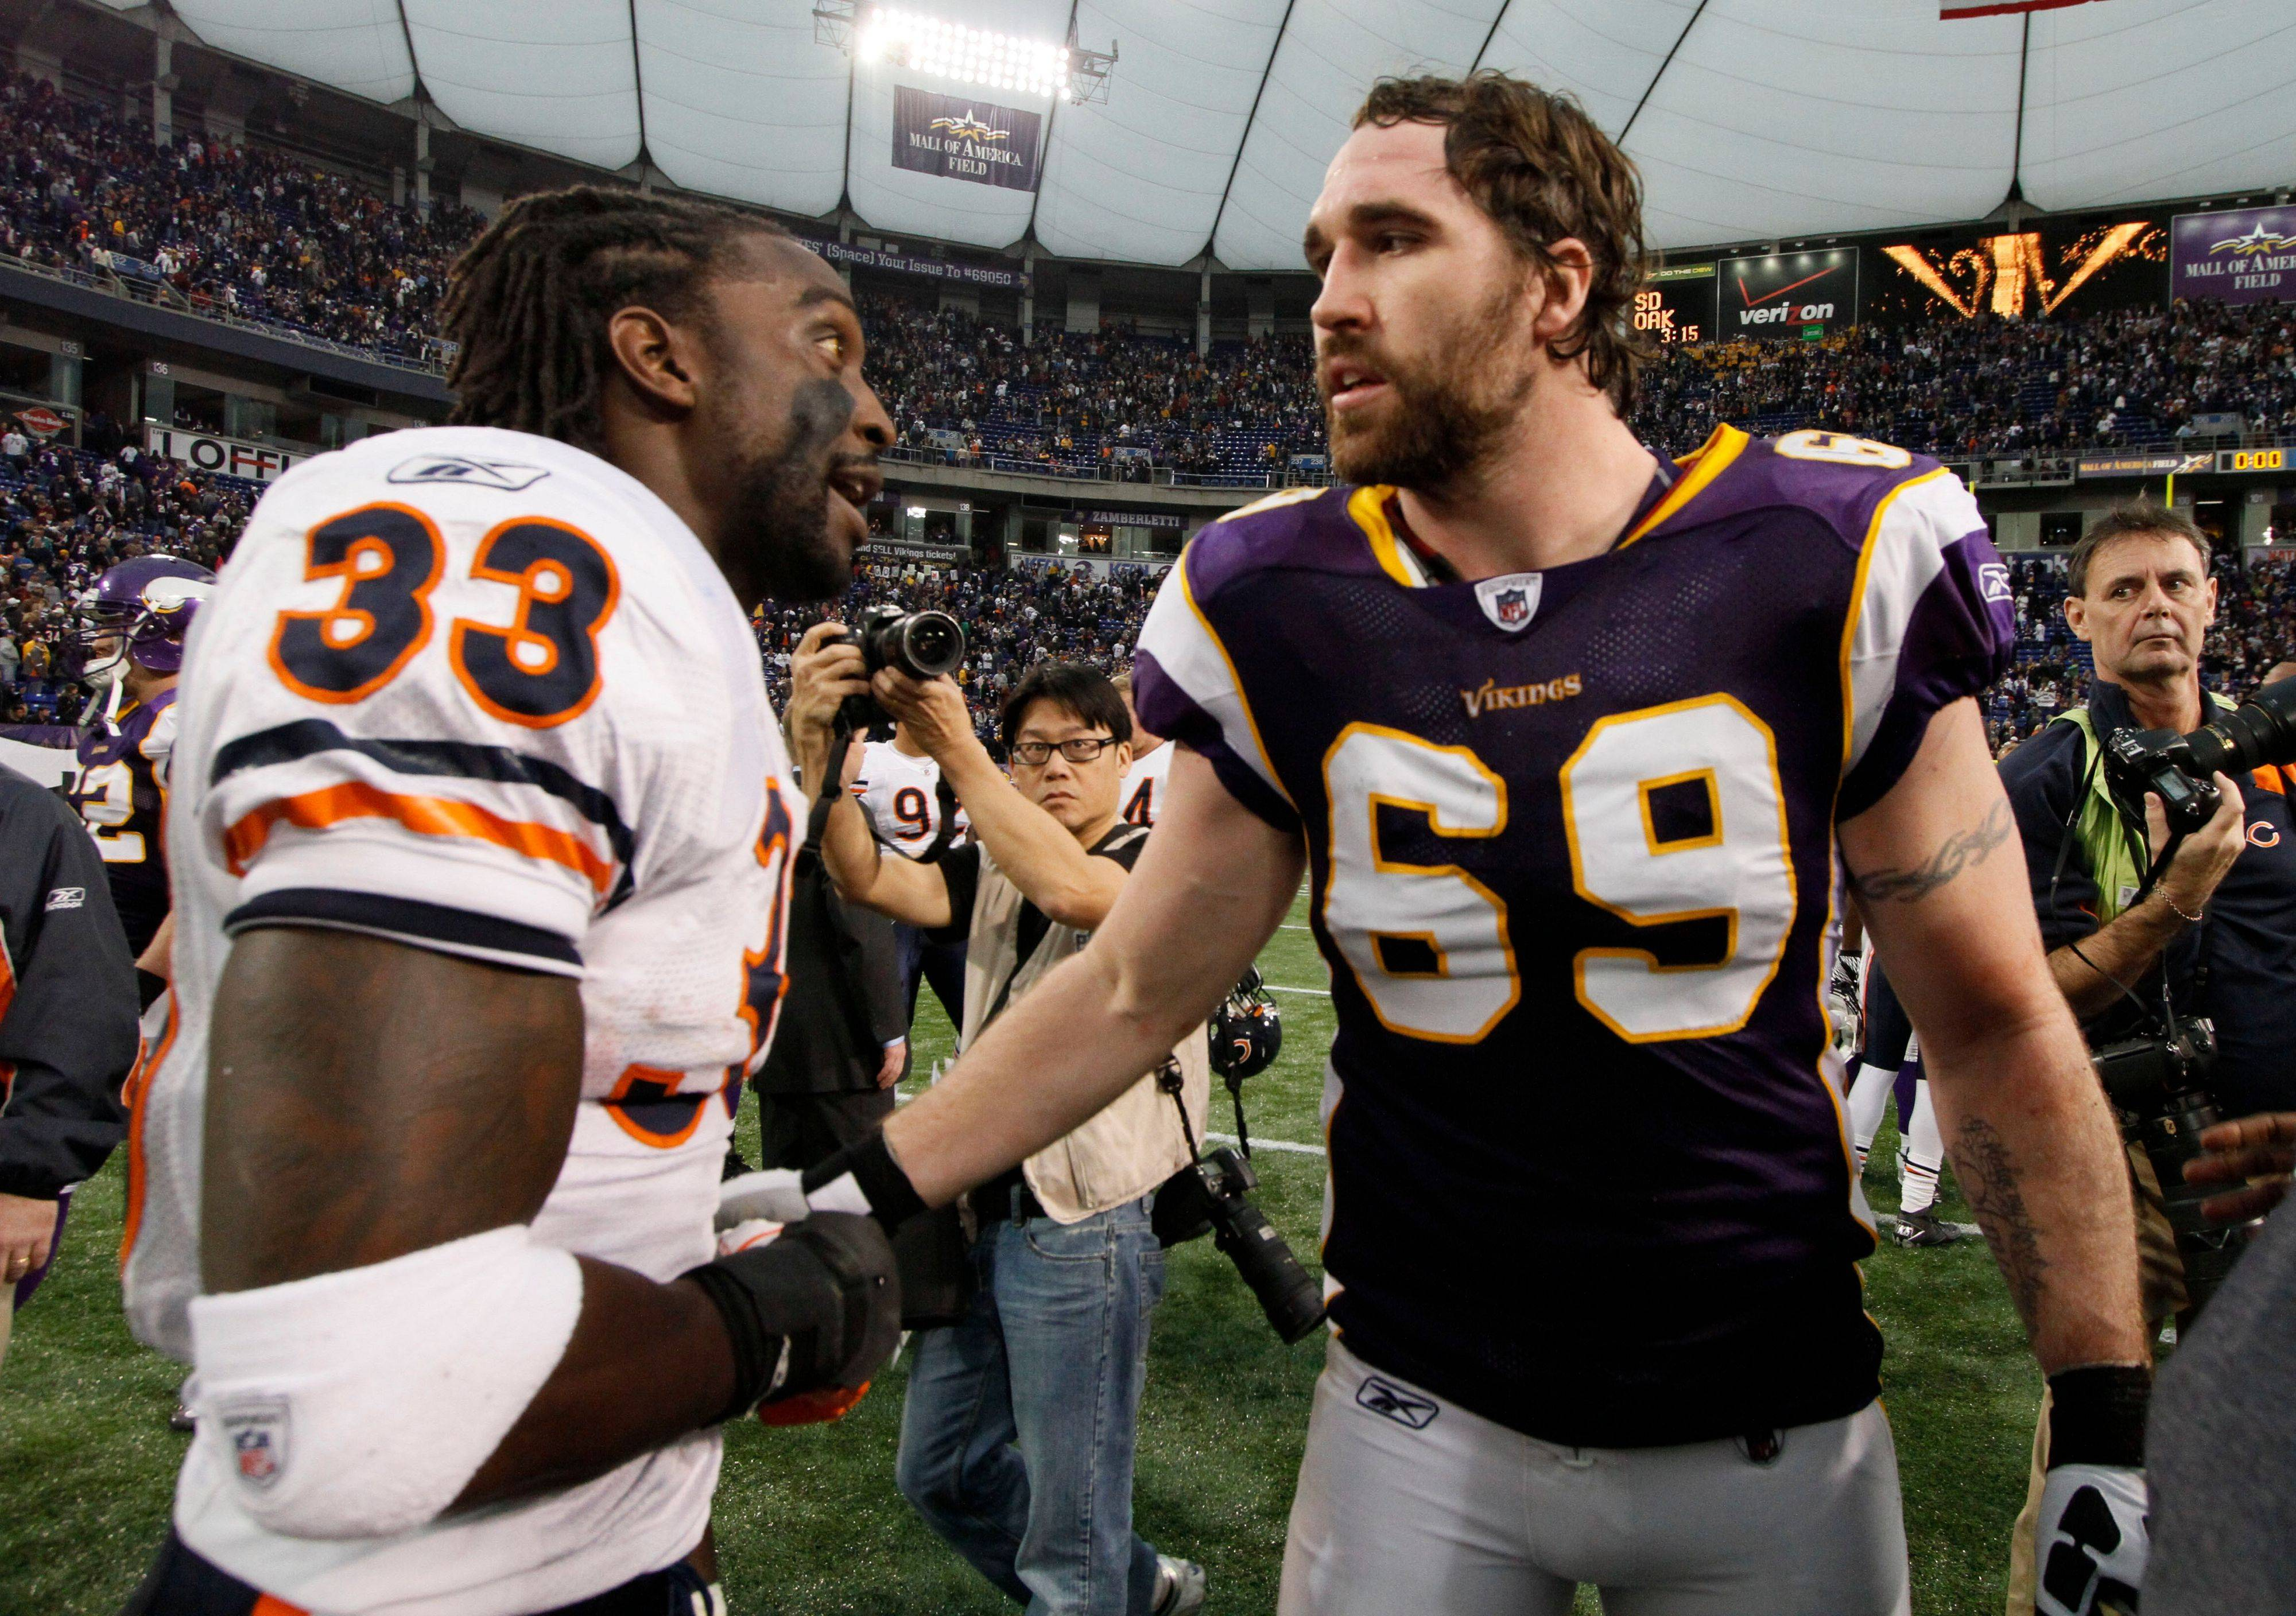 Chicago Bears cornerback Charles Tillman and Minnesota Vikings defensive end Jared Allen greet each other after their NFL football game. The Bears won 17-13.